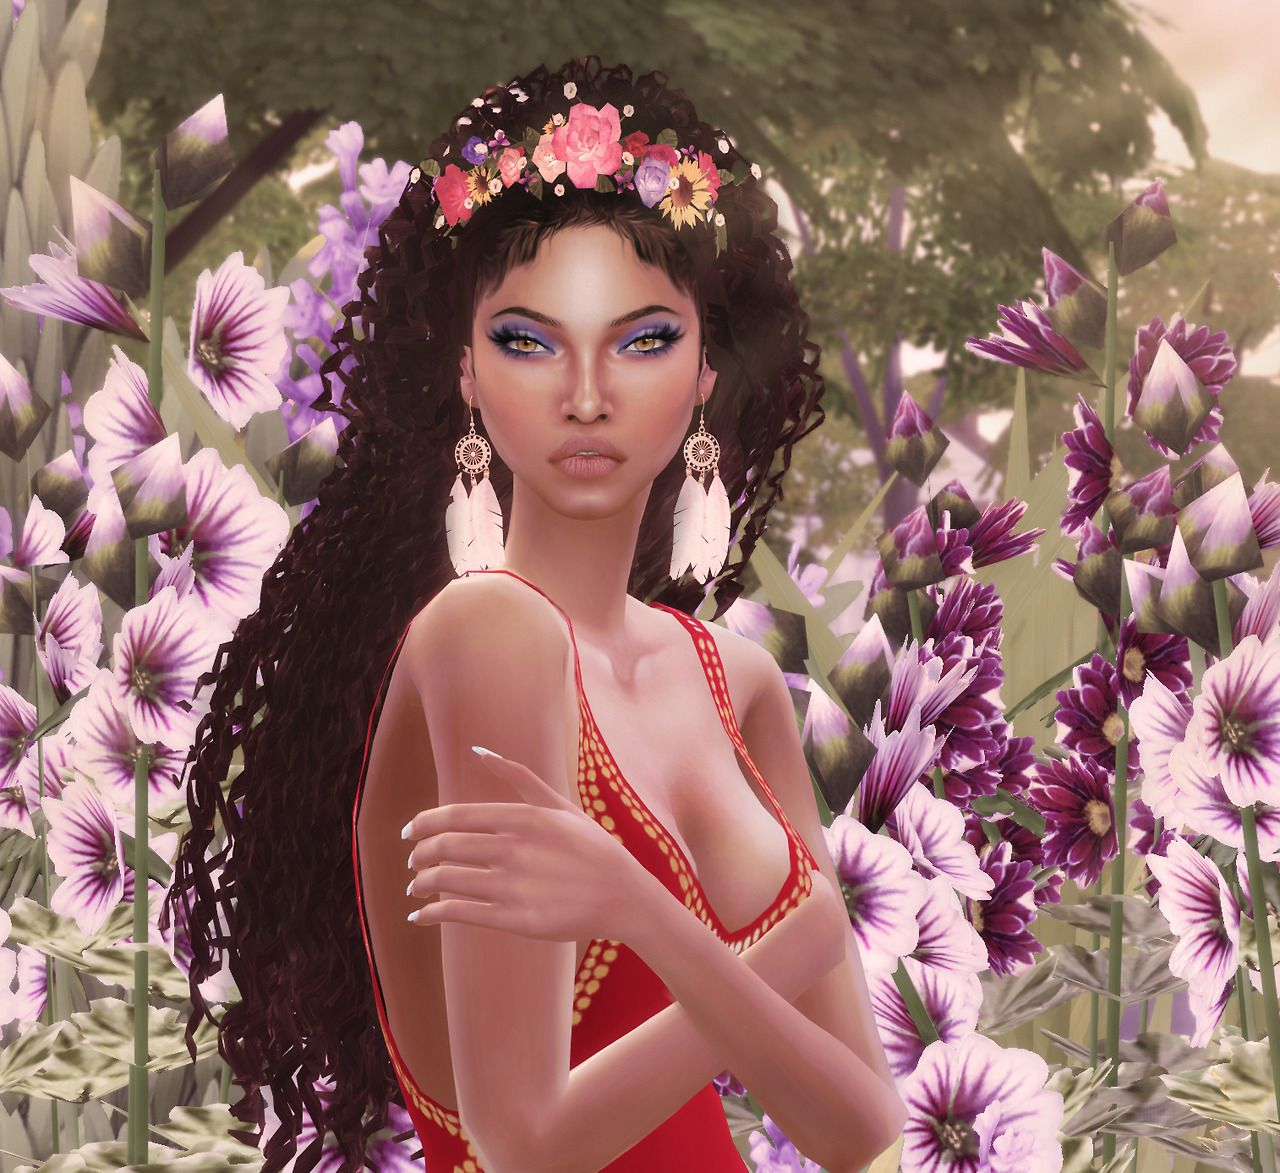 Curly Hair Download Sims 4 Cc: Sims 4 Download & Custom Content ☆ Https